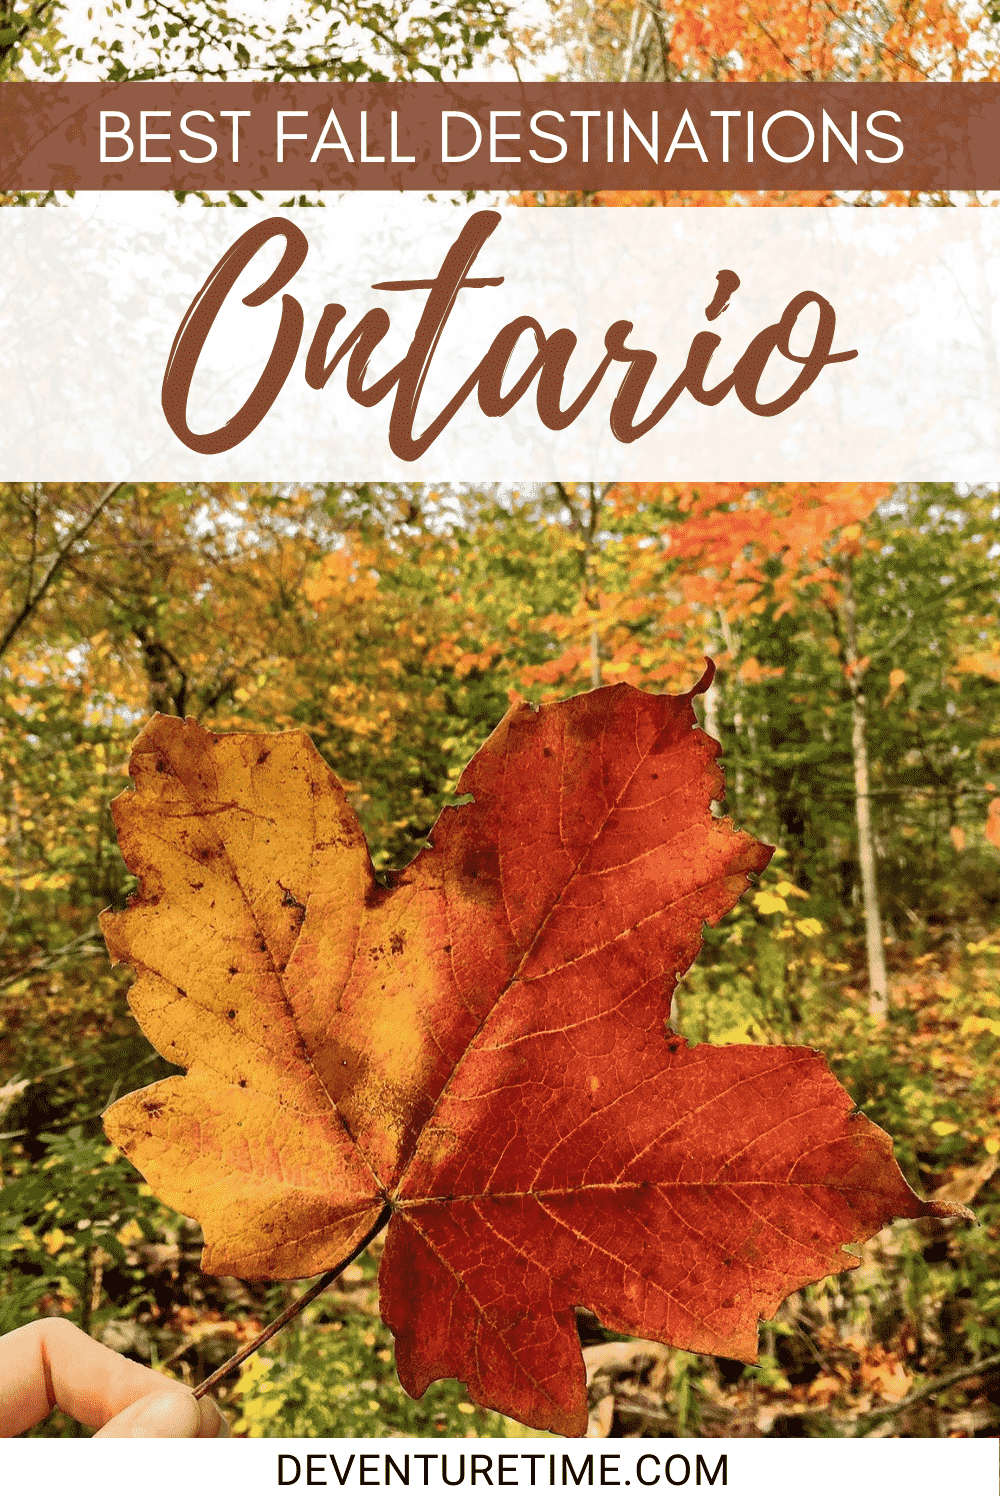 Breathtaking Places To Visit This Fall In Ontario Breathtaking Places Autumn Destinations Ontario Travel